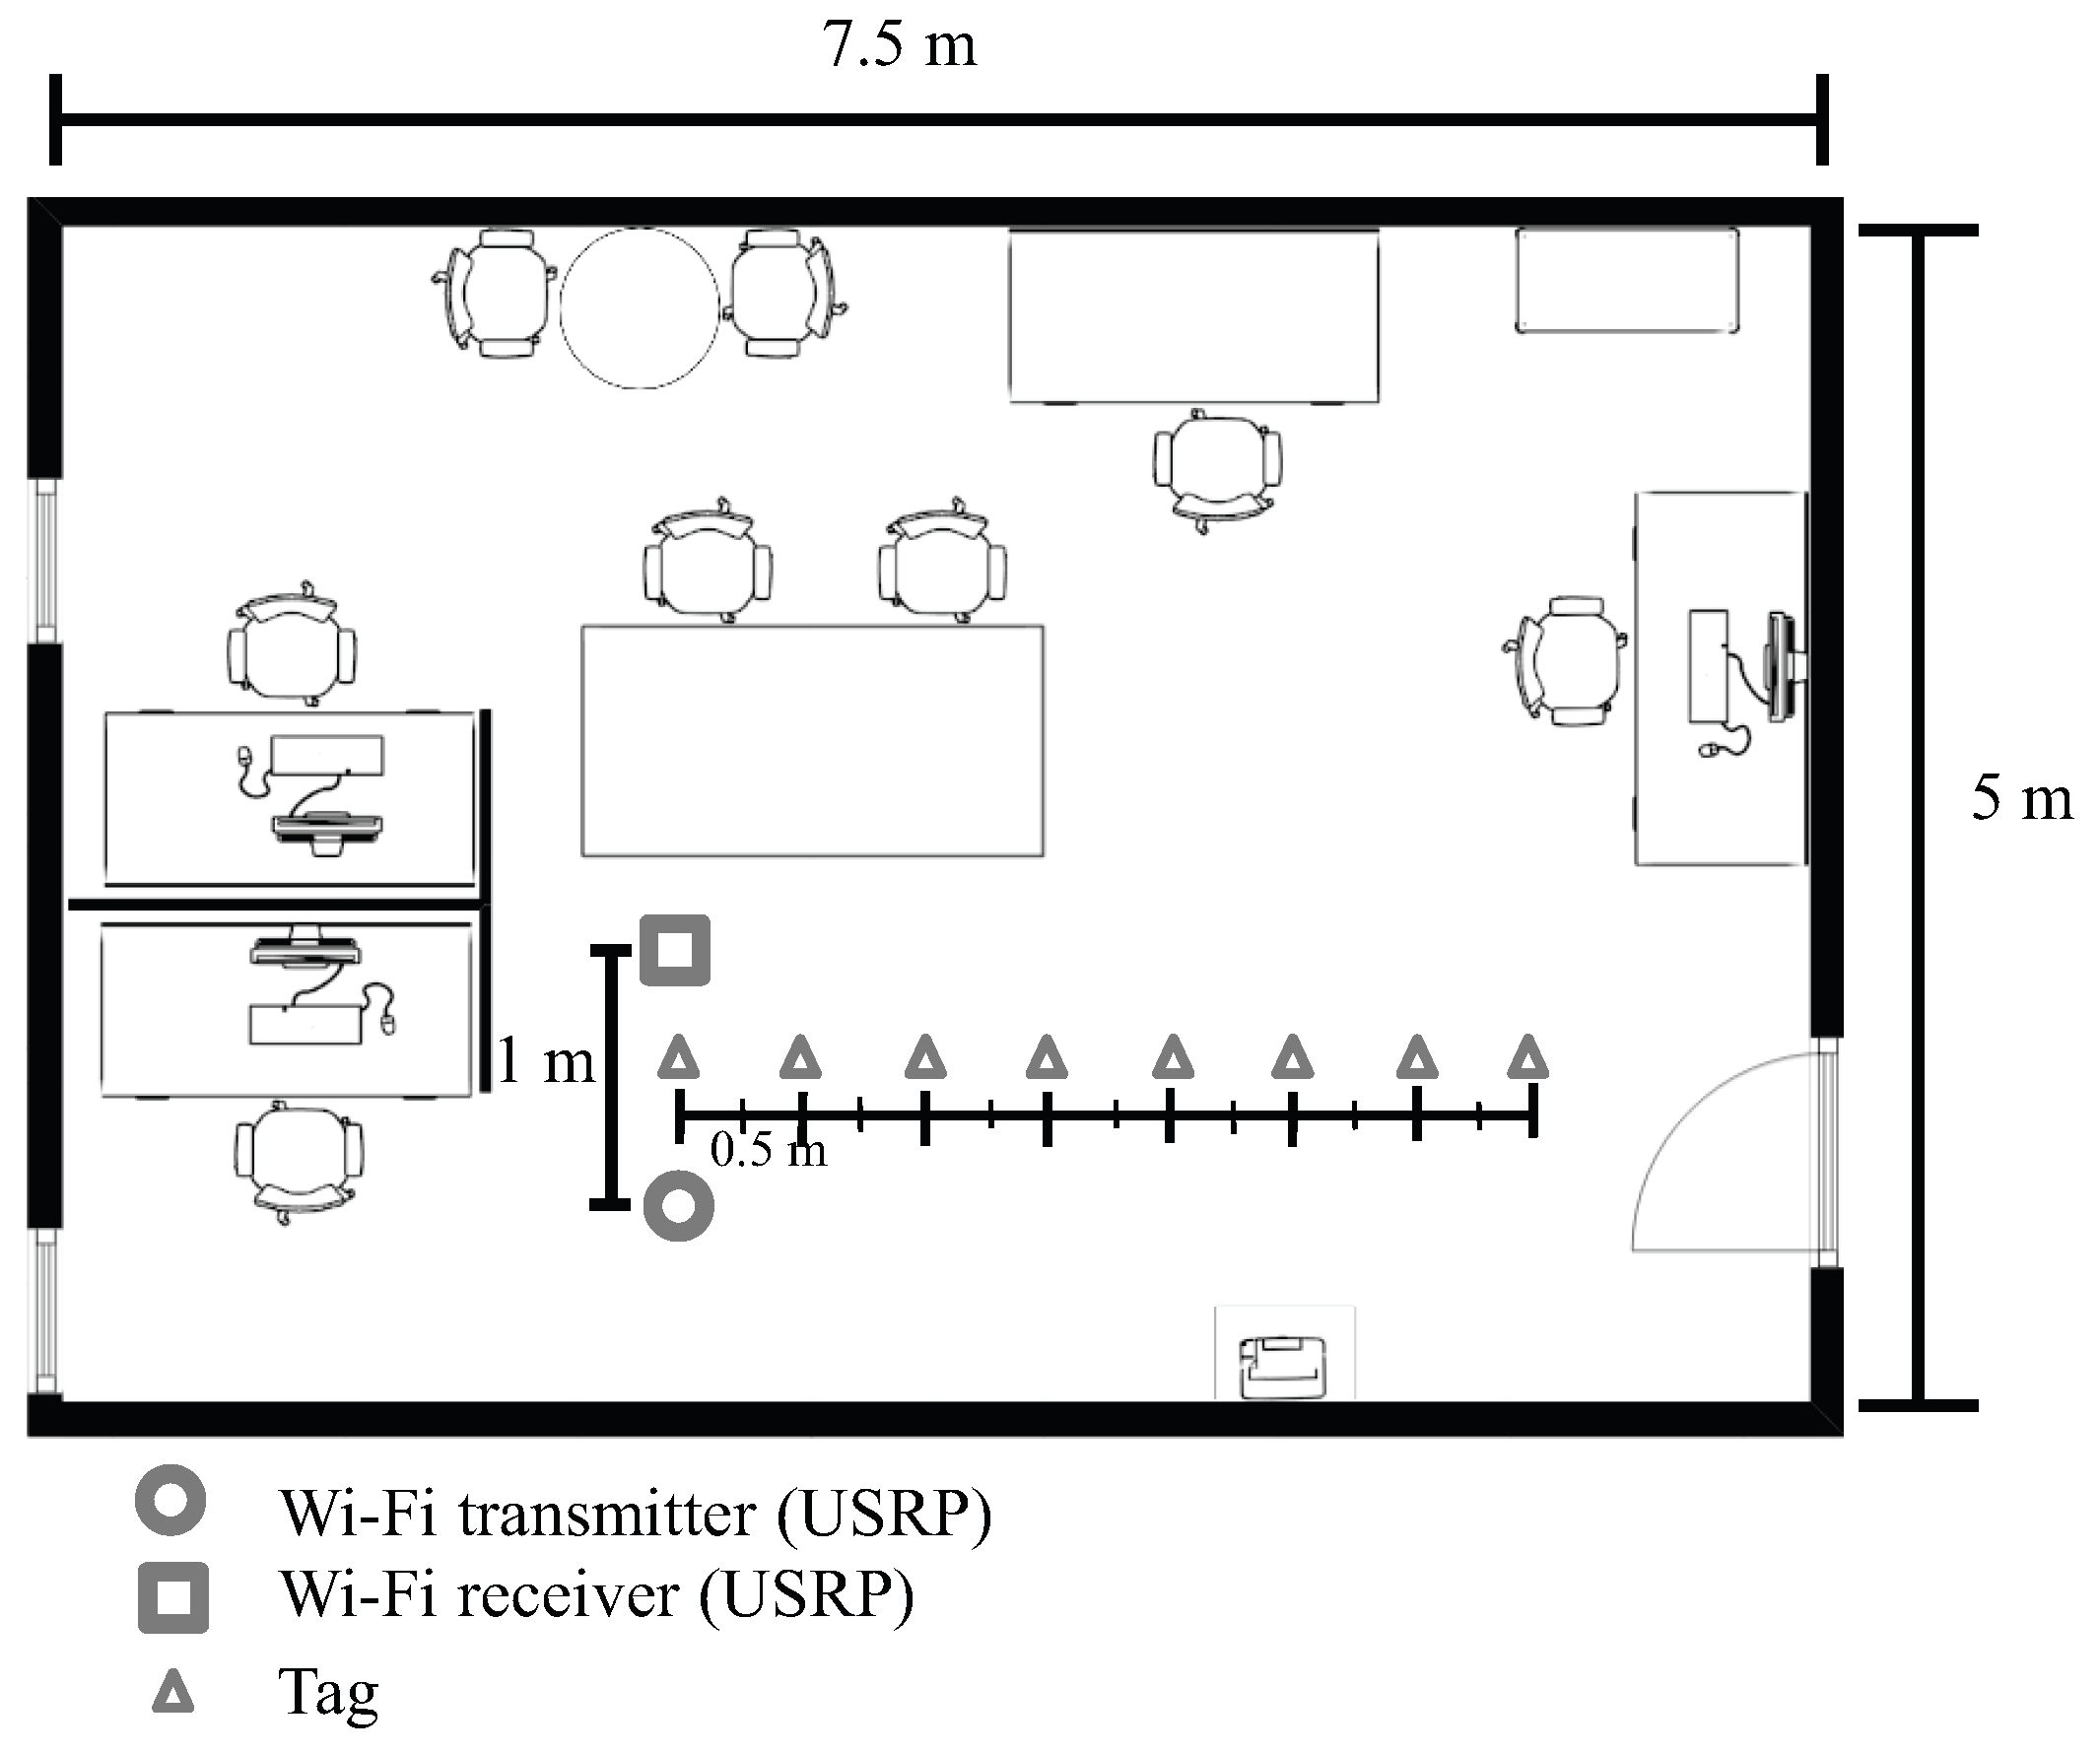 Sensors | Free Full-Text | Pattern-Based Decoding for Wi-Fi